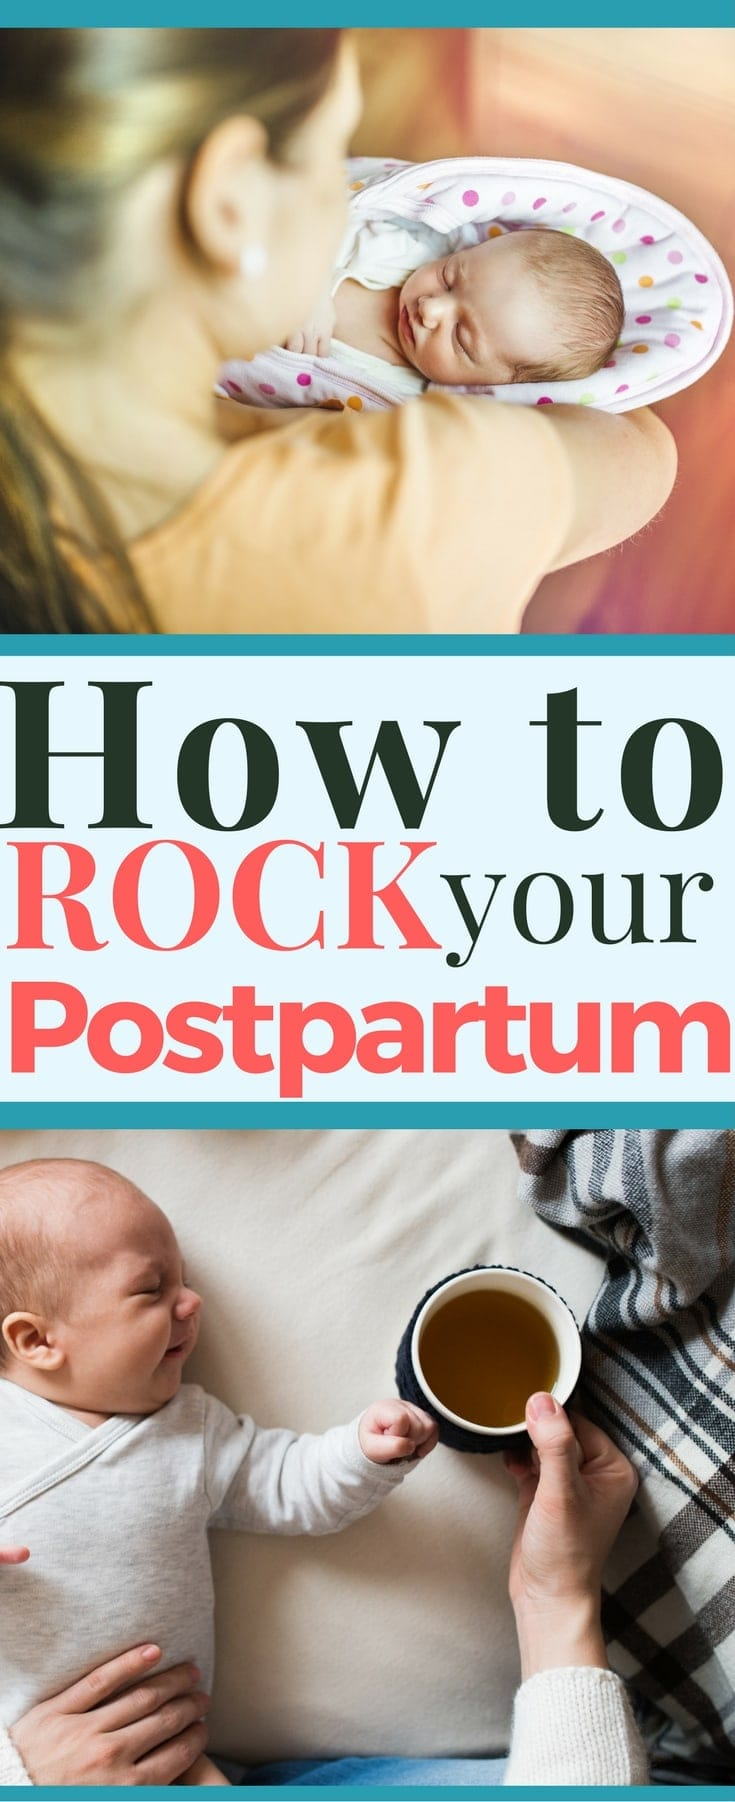 How to rock your postpartum, heal faster after birth & enjoy your newborn more!